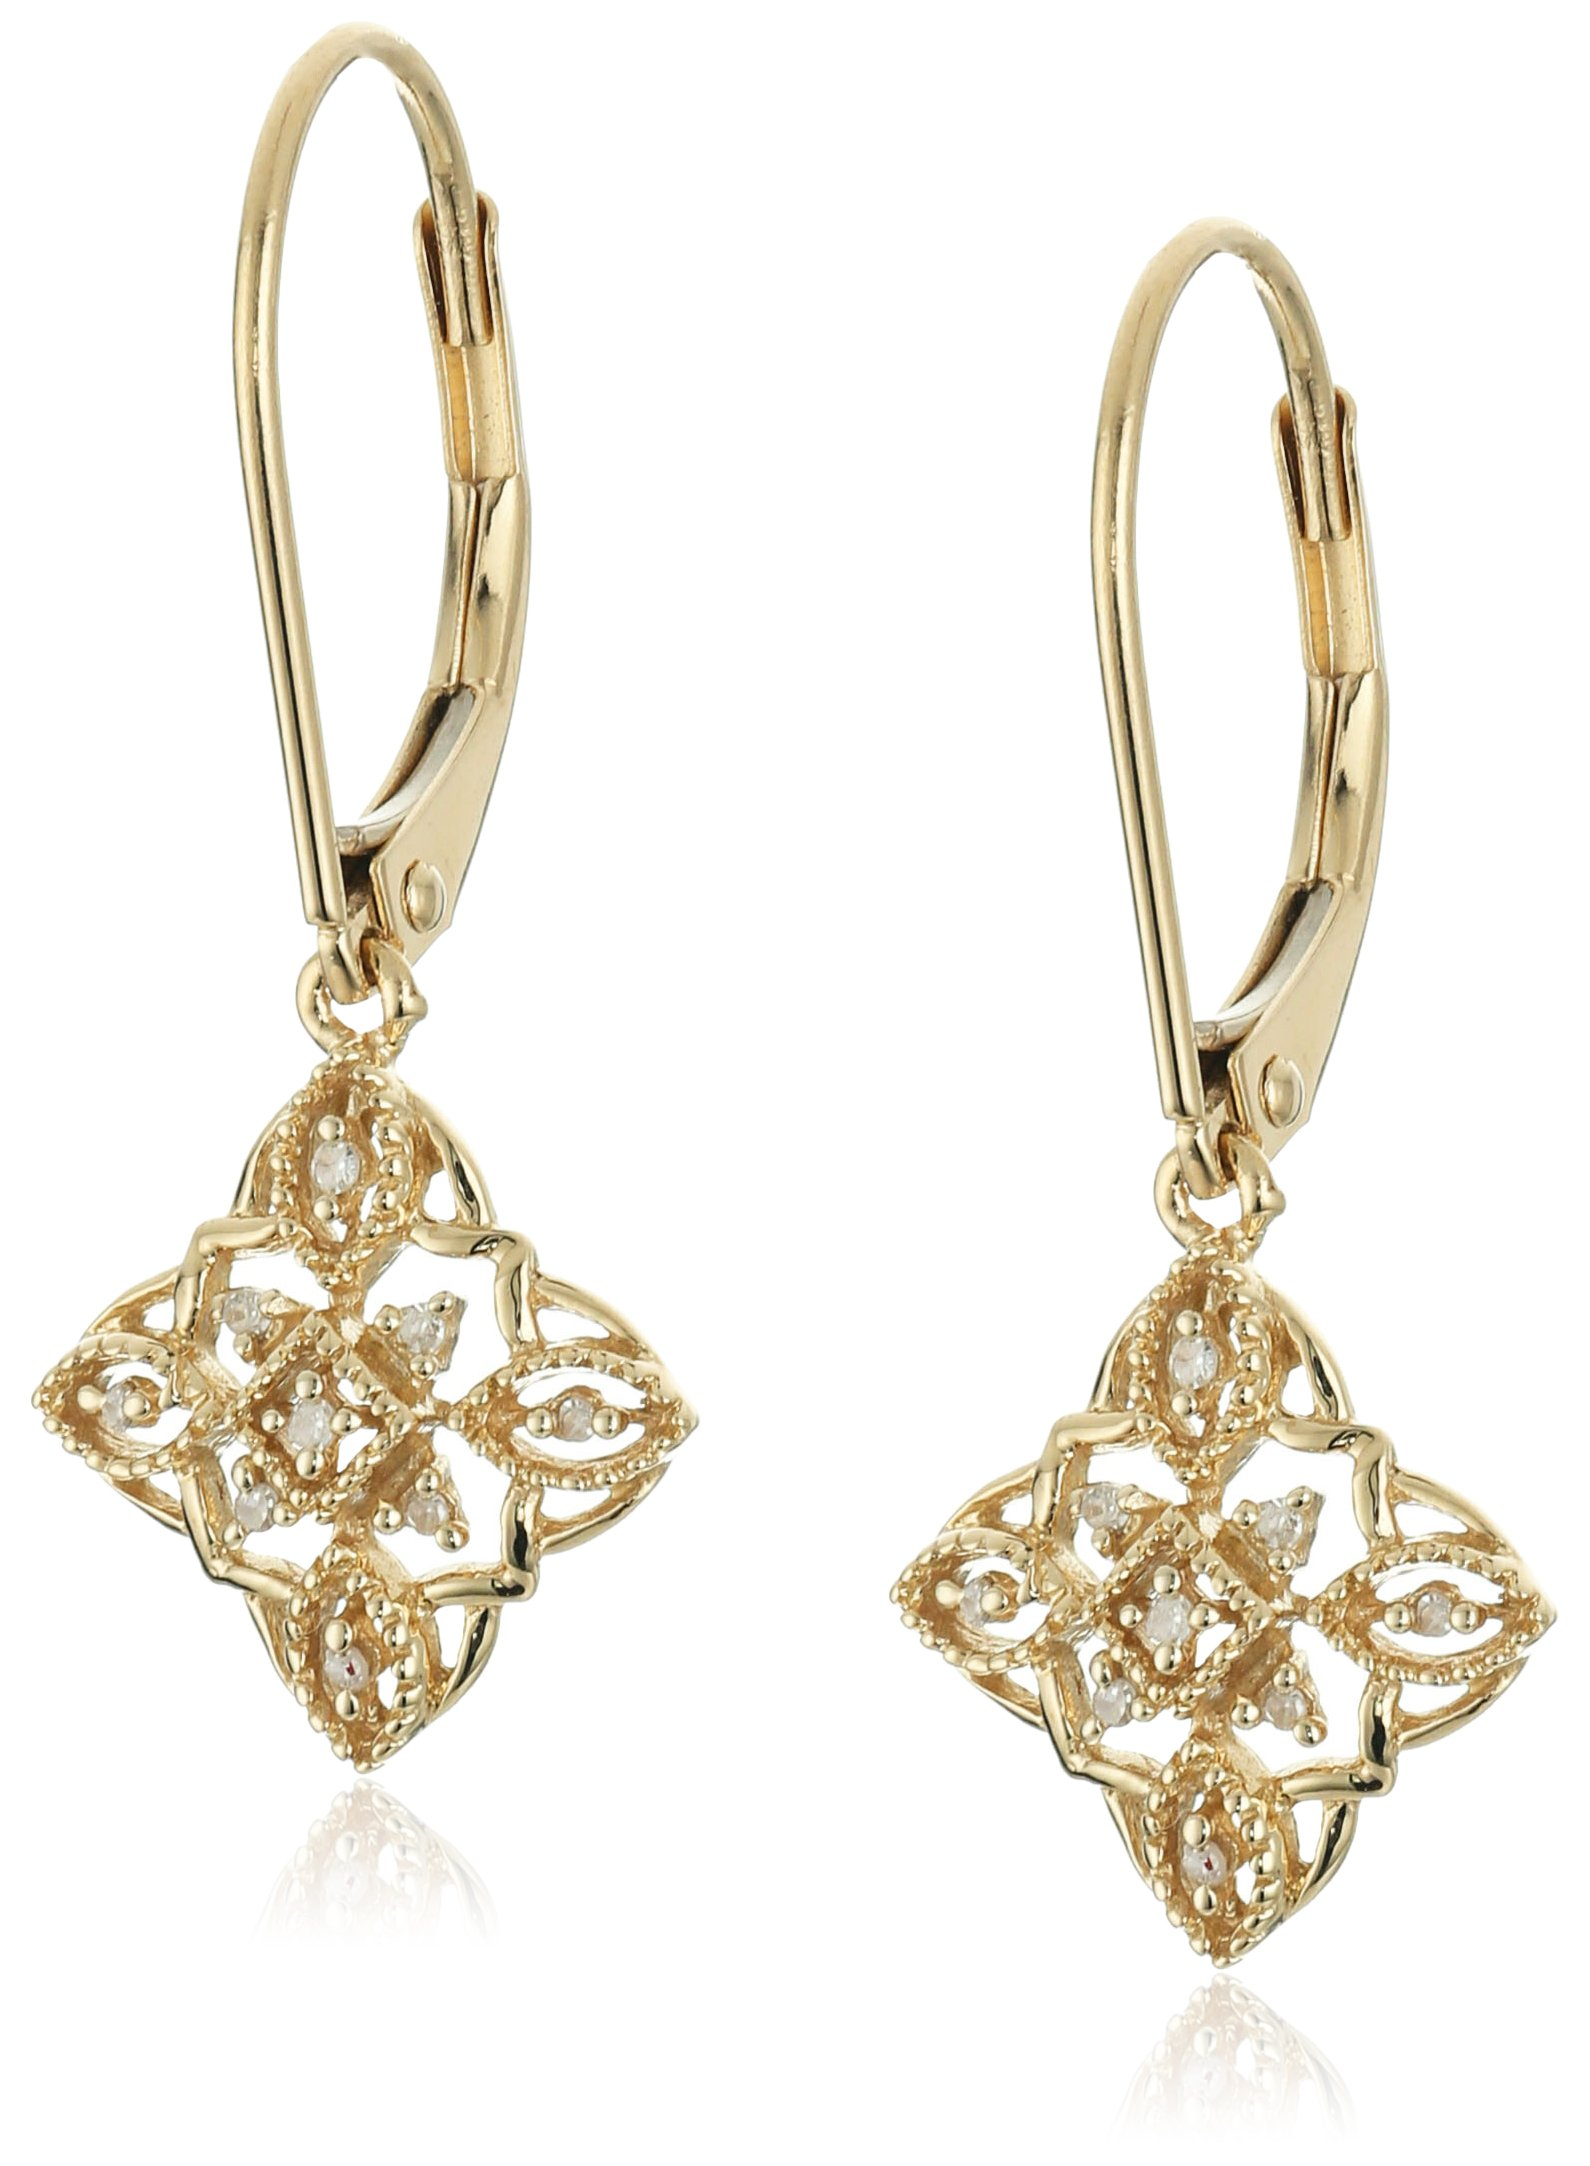 10K Yellow Gold Diamond Accent Vintage Dangle Earrings